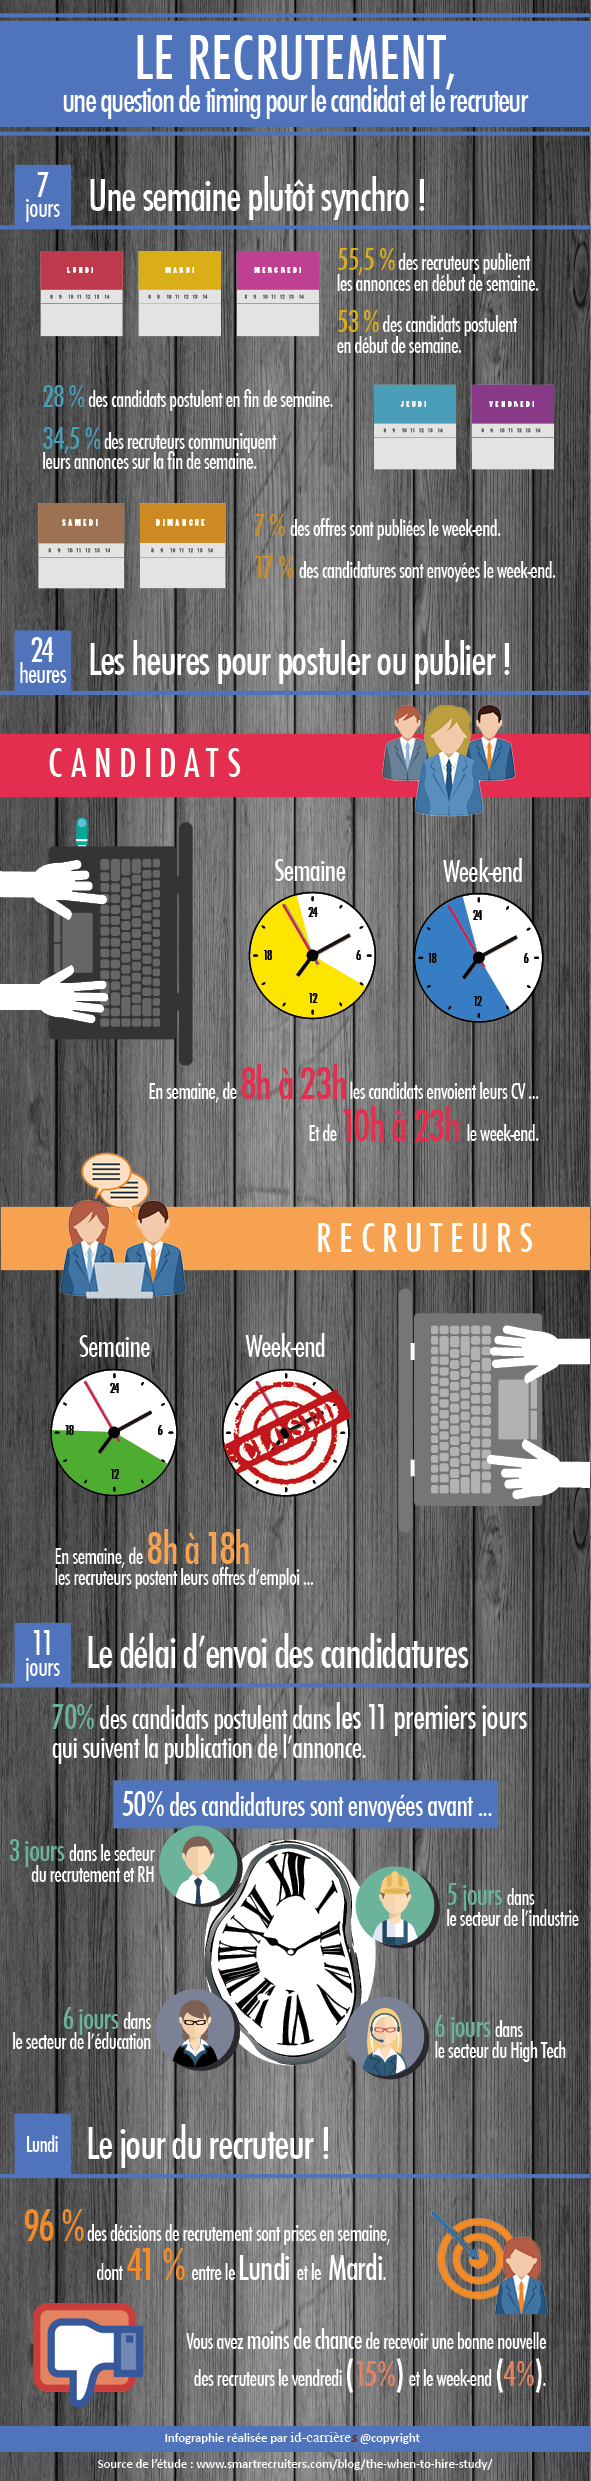 recrutement timing